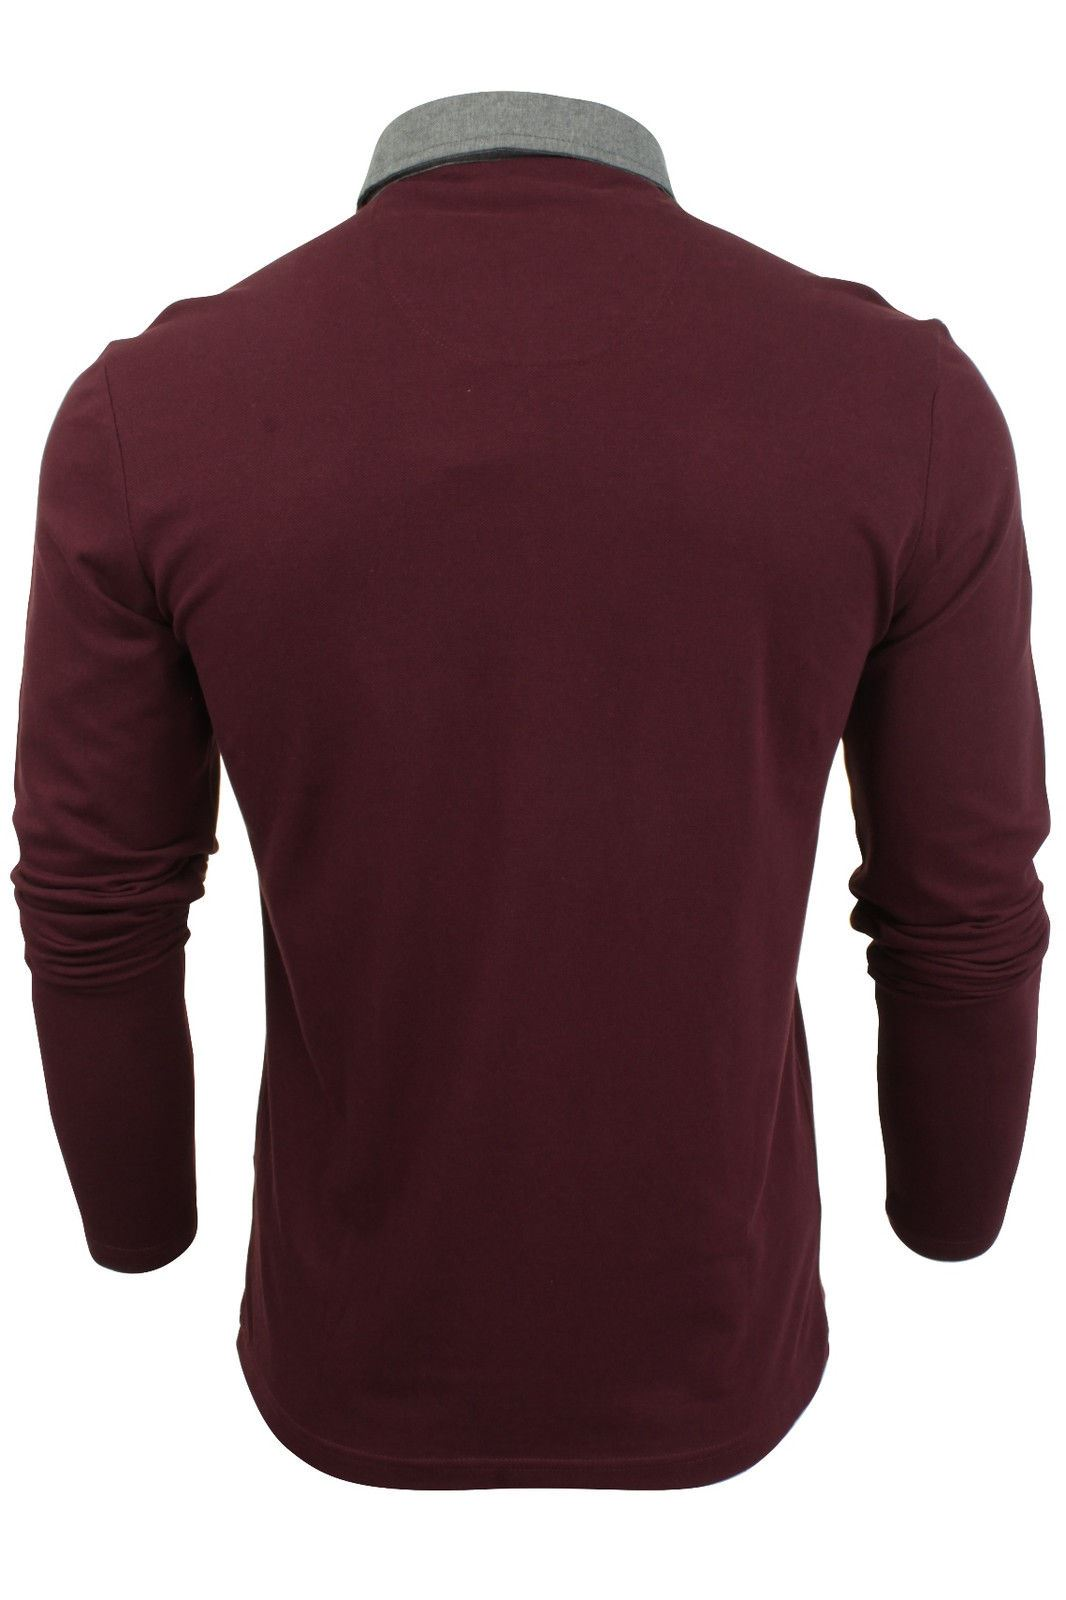 New-Mens-Button-Up-Long-Sleeve-Pique-Collared-Casual-Formal-Polo-Jumper-Shirt thumbnail 7